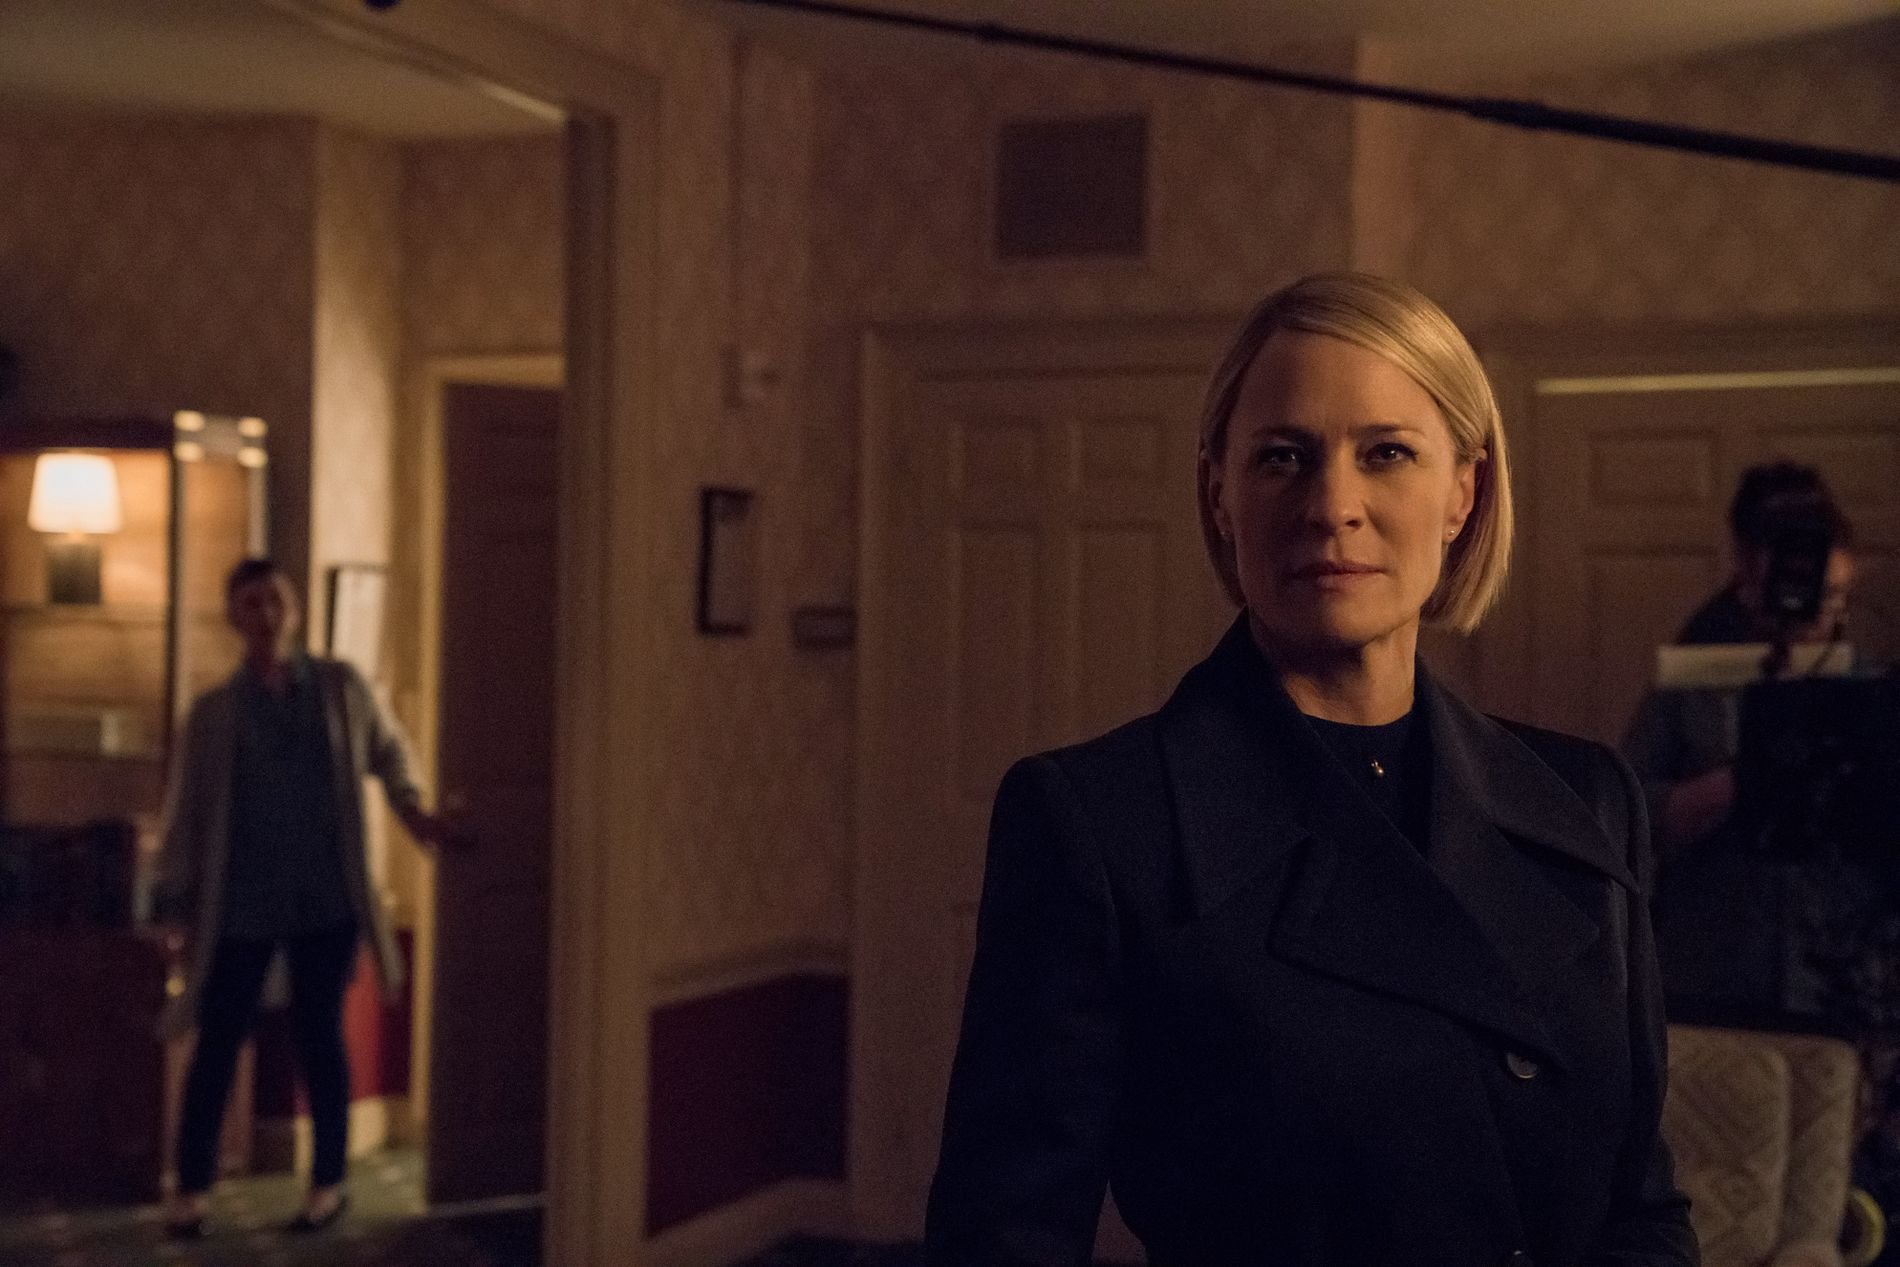 OVERTAR HOVEDROLLEN: Robin Wright i rollen som Claire Underwood i «House of Cards».